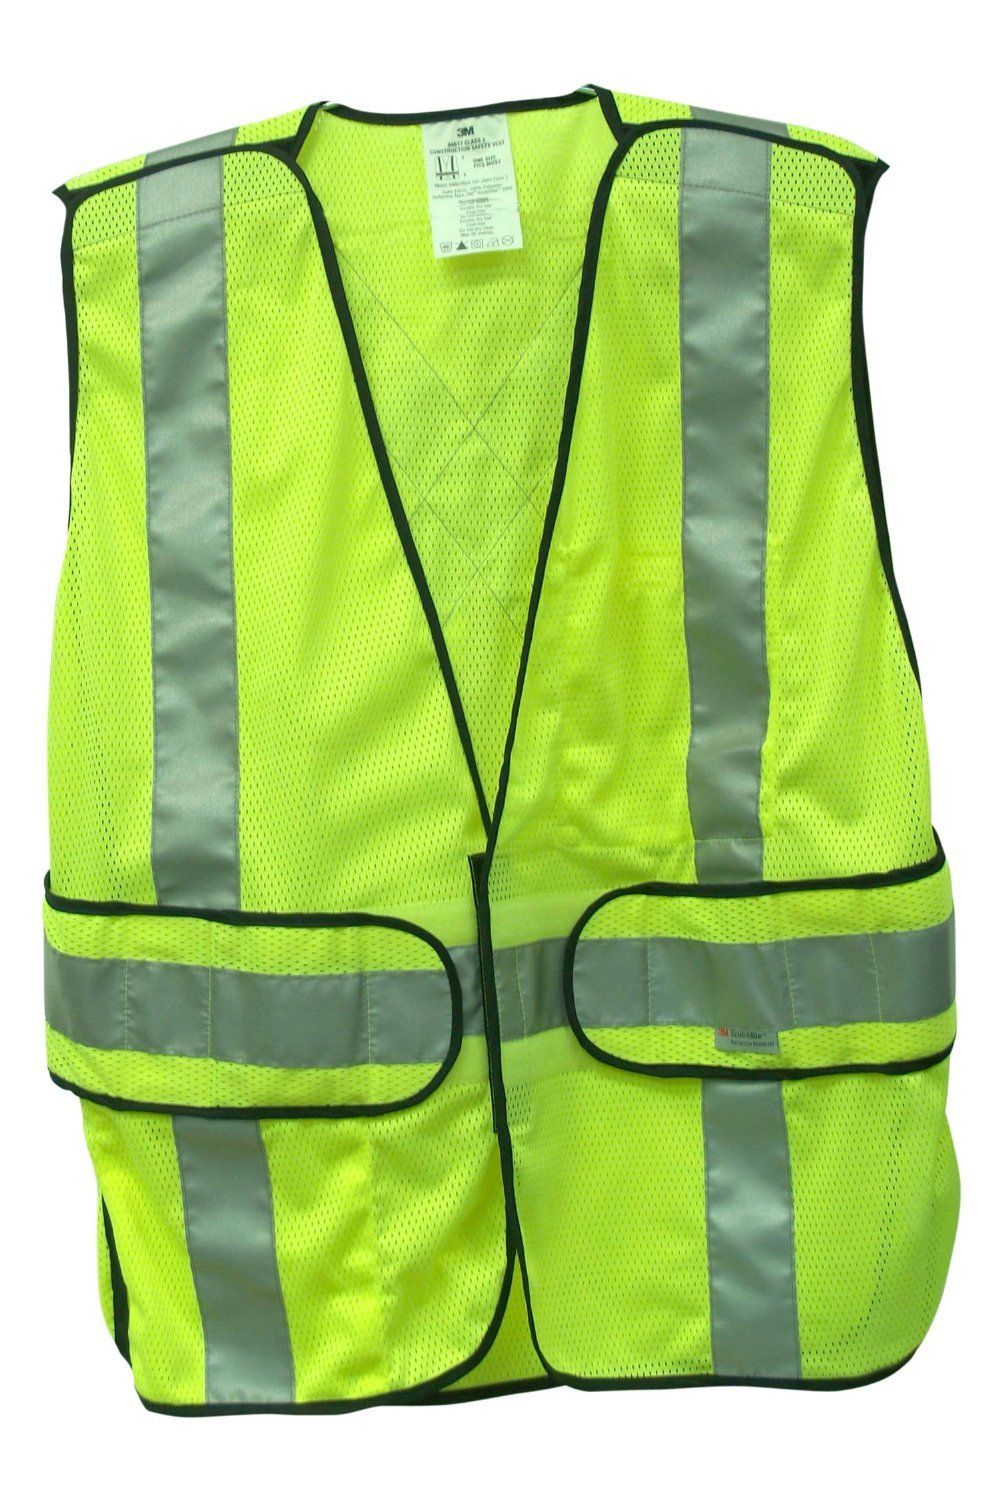 construction safety vest with pockets